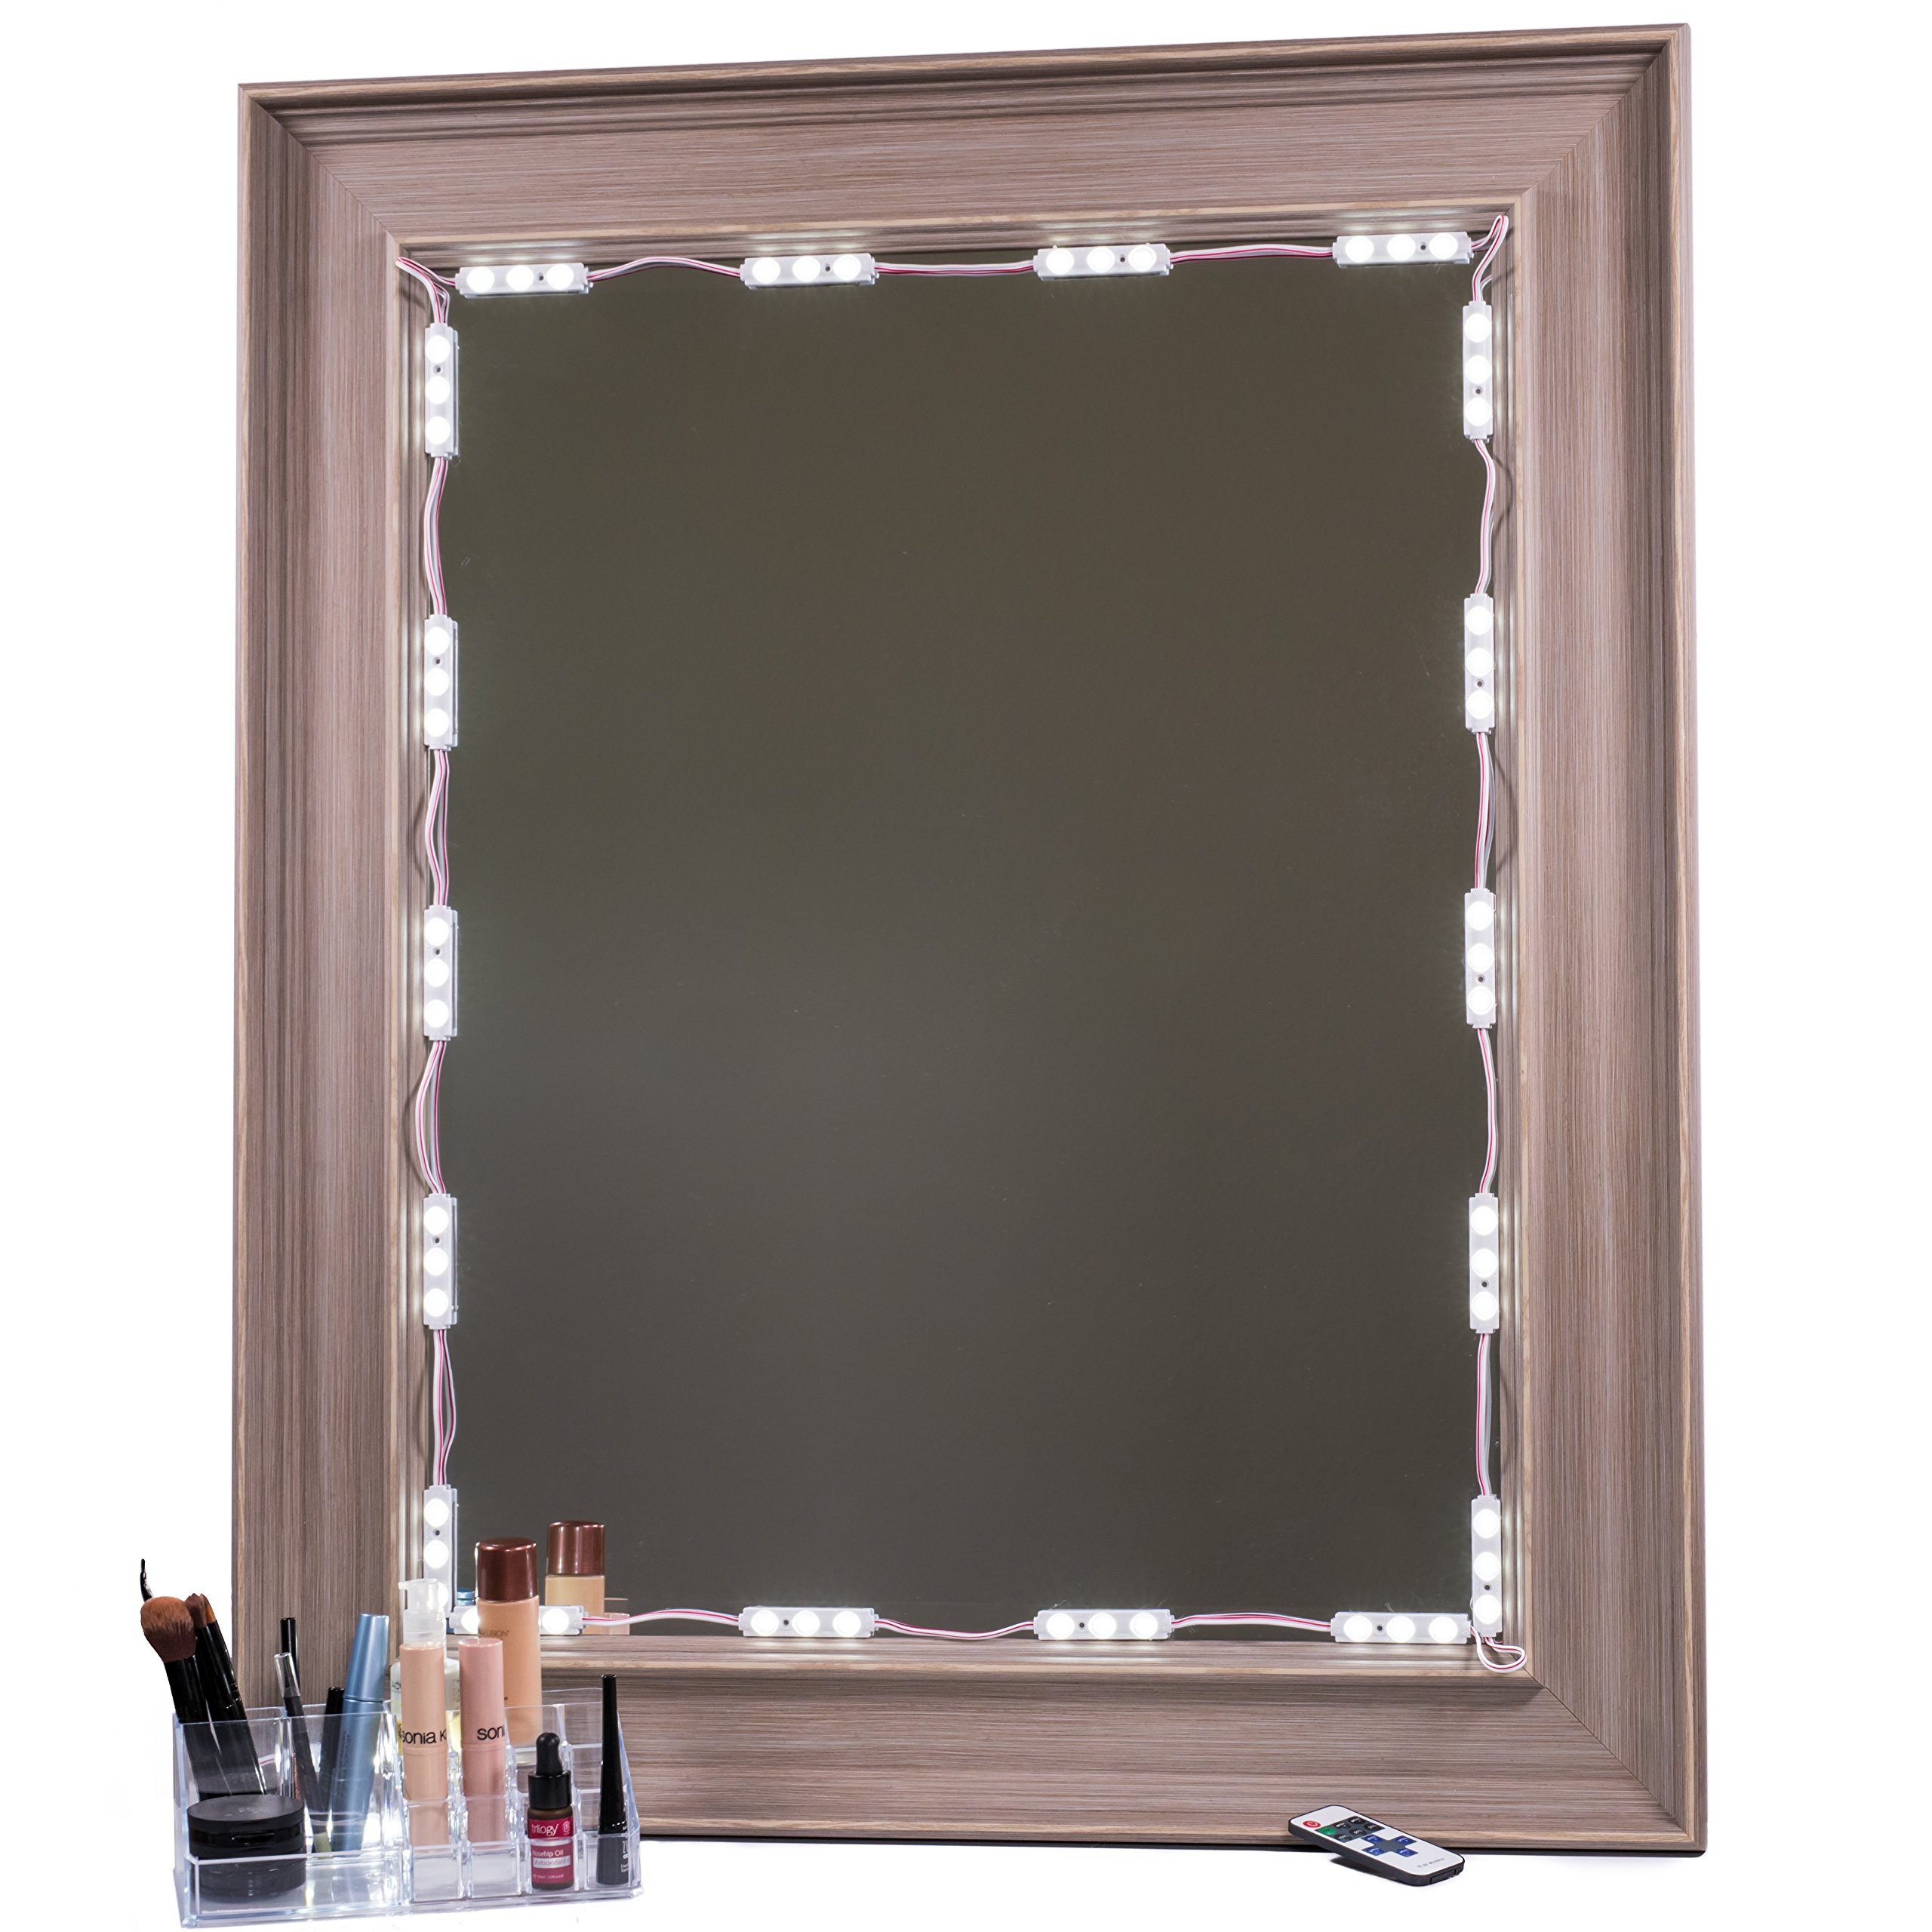 Vanity Mirror Makeup Lights Kit with Added Bonus Acrylic Cosmetic Organizer Hollywood Style 60 LED Adjustable Dimmable Natural Lighting Fixture Strip for Table Top Dresser Set